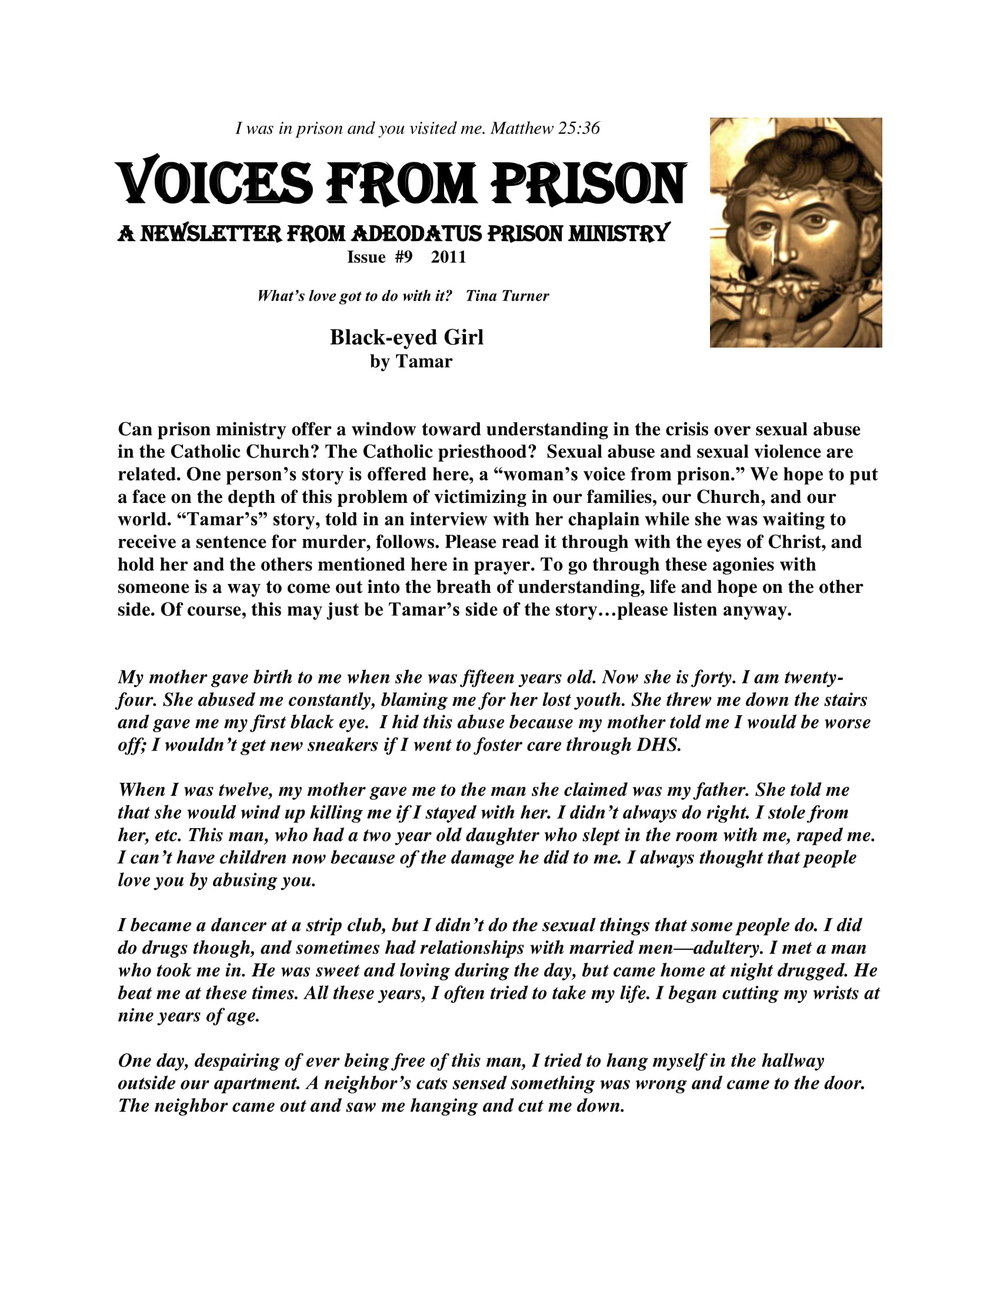 Voices From Prison 9-1.jpg